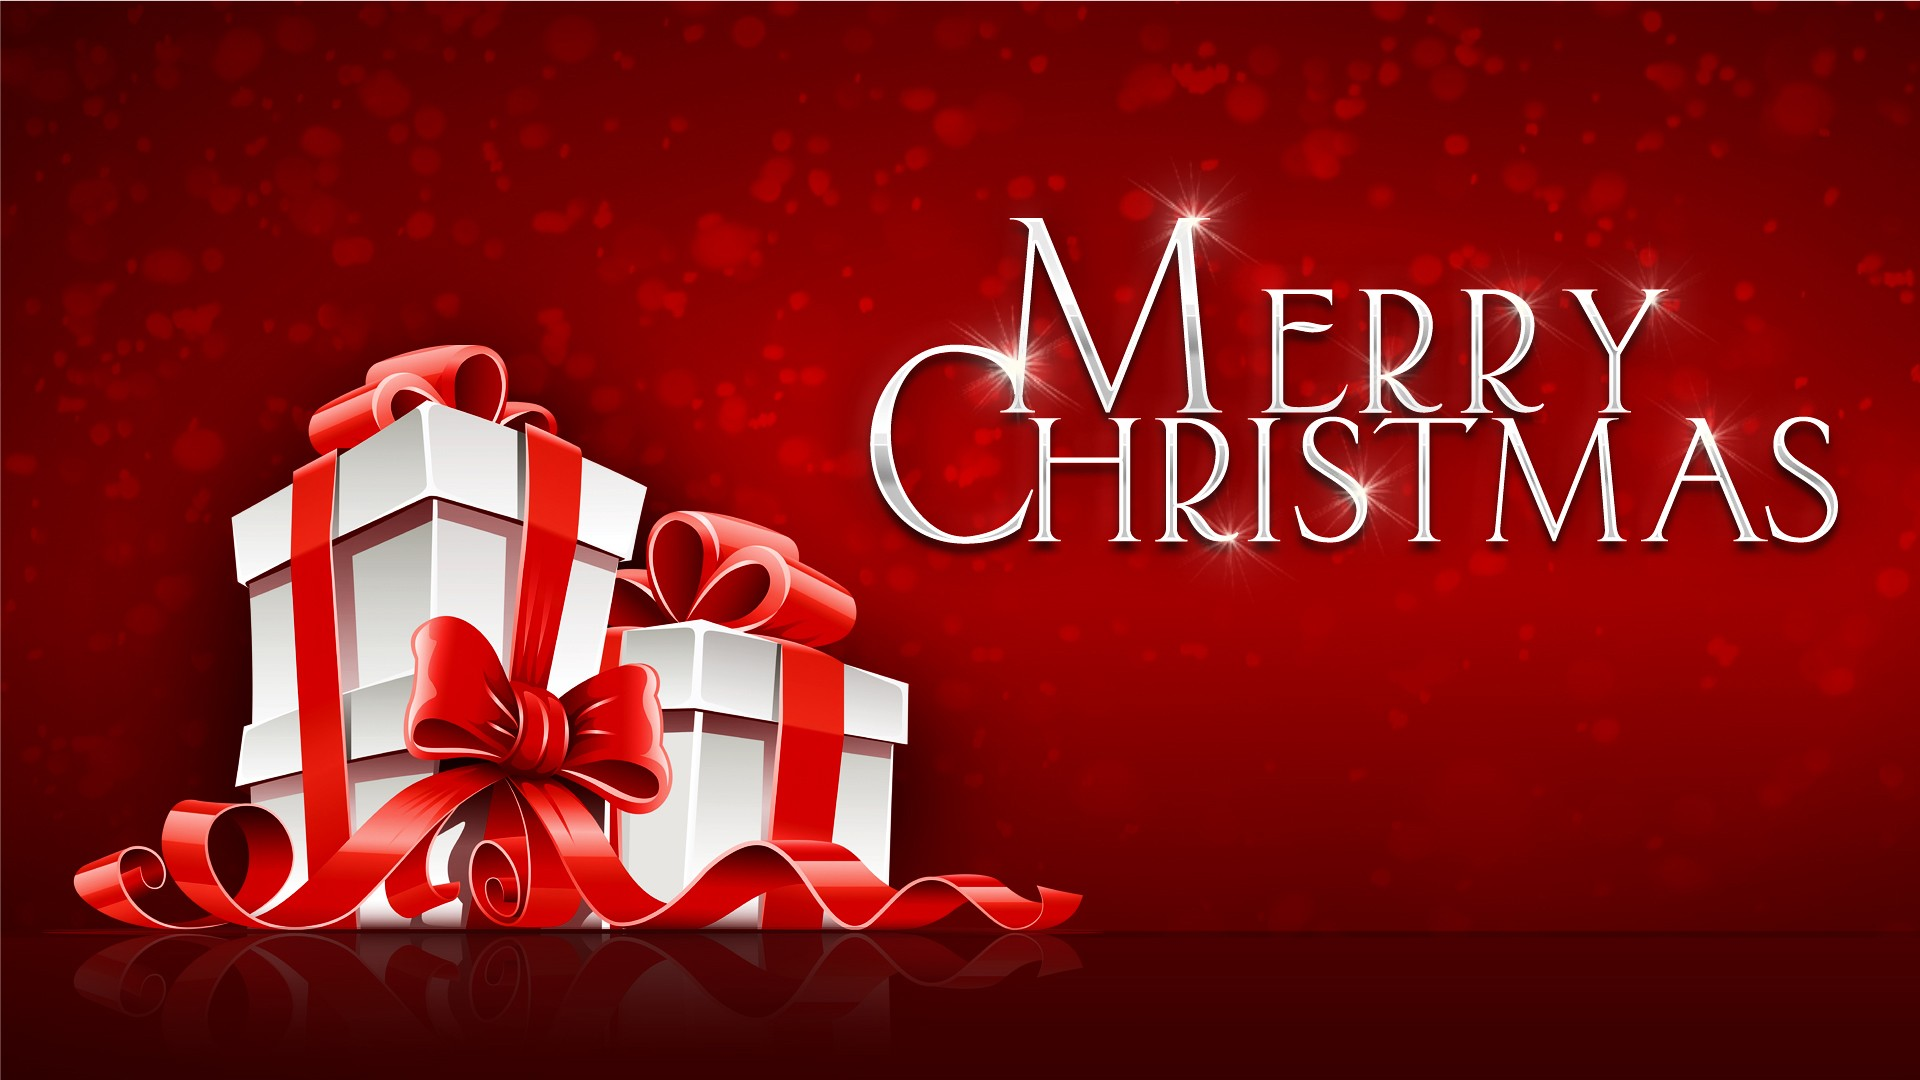 merry christmas wallpaper background